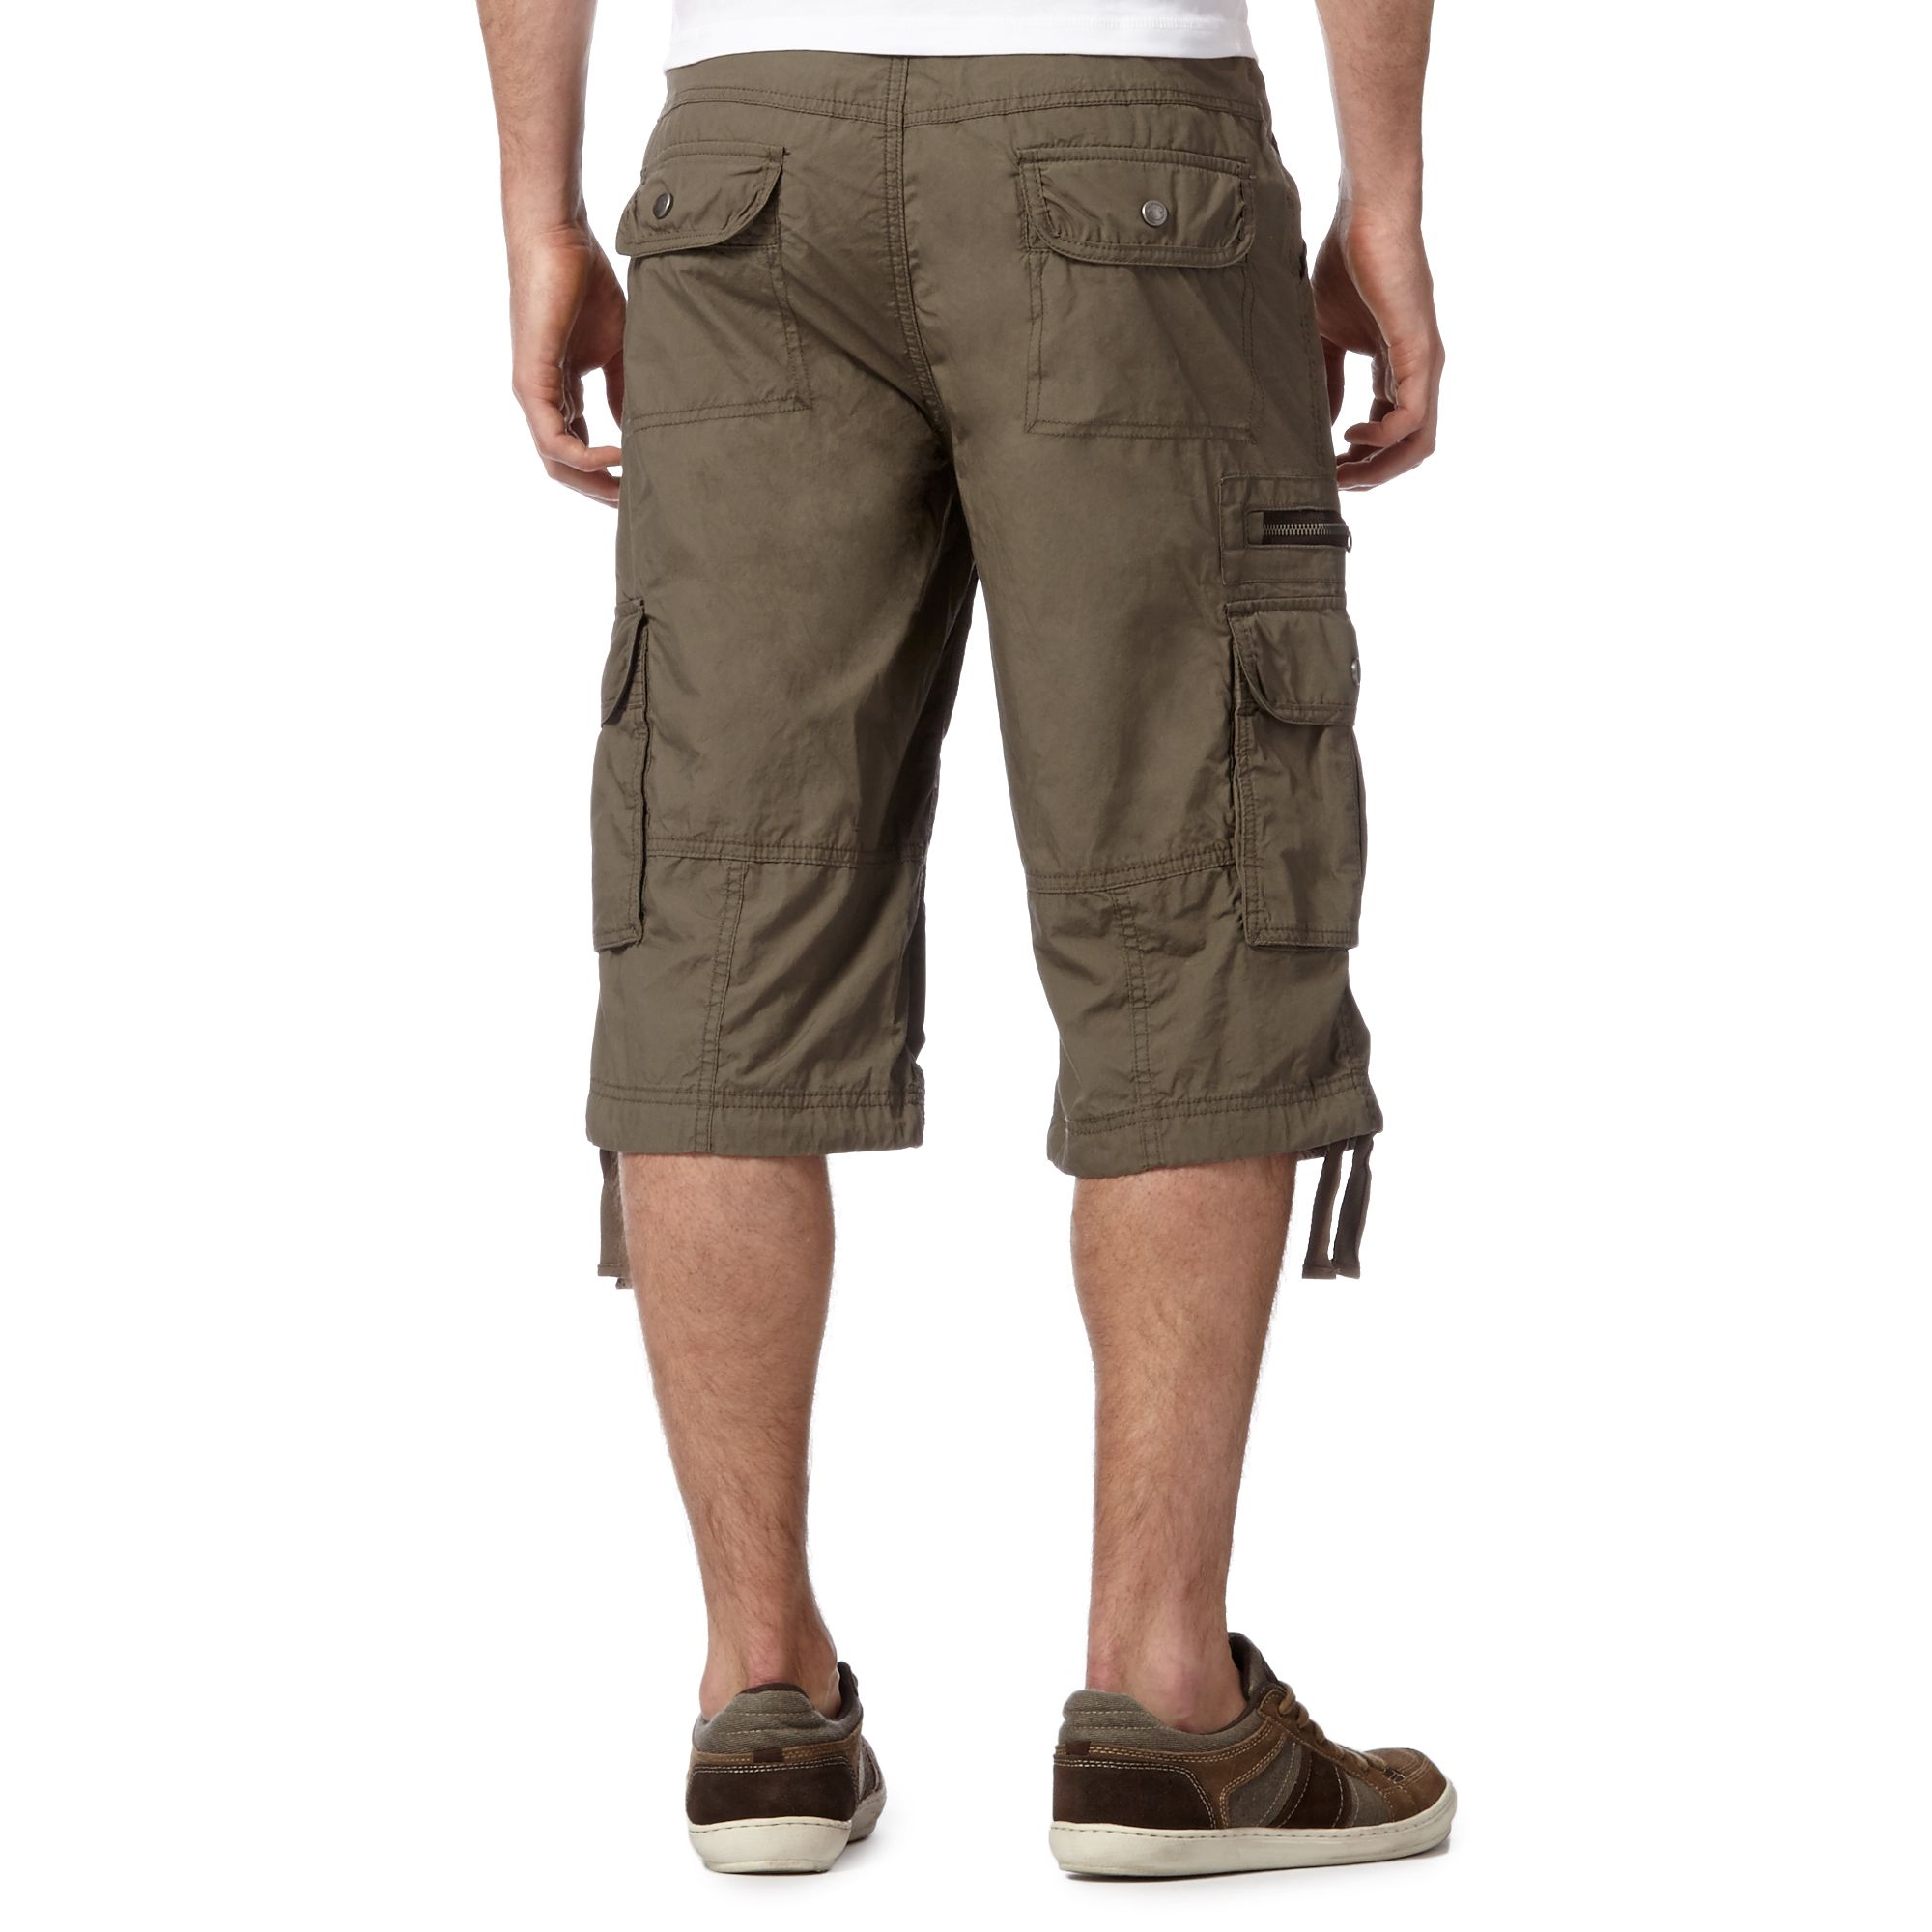 Men's Trousers Men's 3/4 Length Trousers When the weather starts to look that little bit brighter, you can't go wrong with a pair of 3/4 length trousers from Trespass.